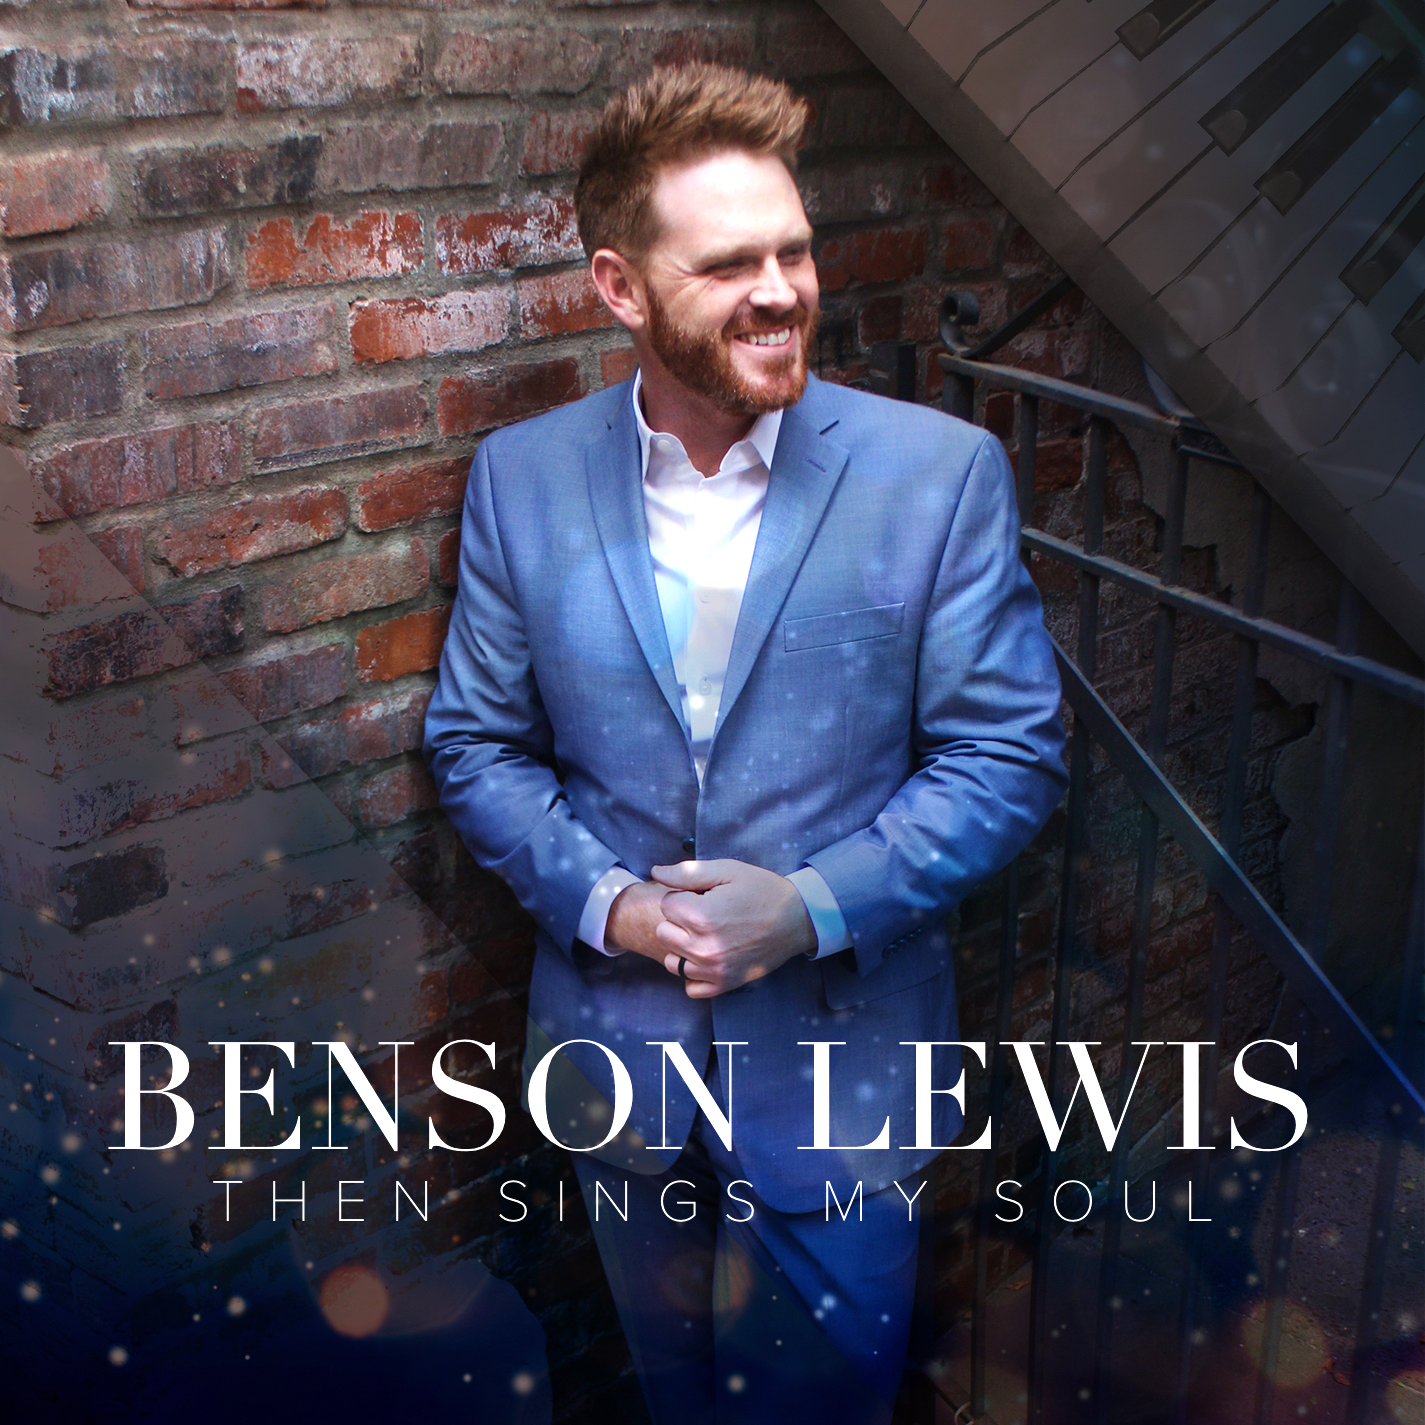 Benson Lewis: Then Sings My Soul